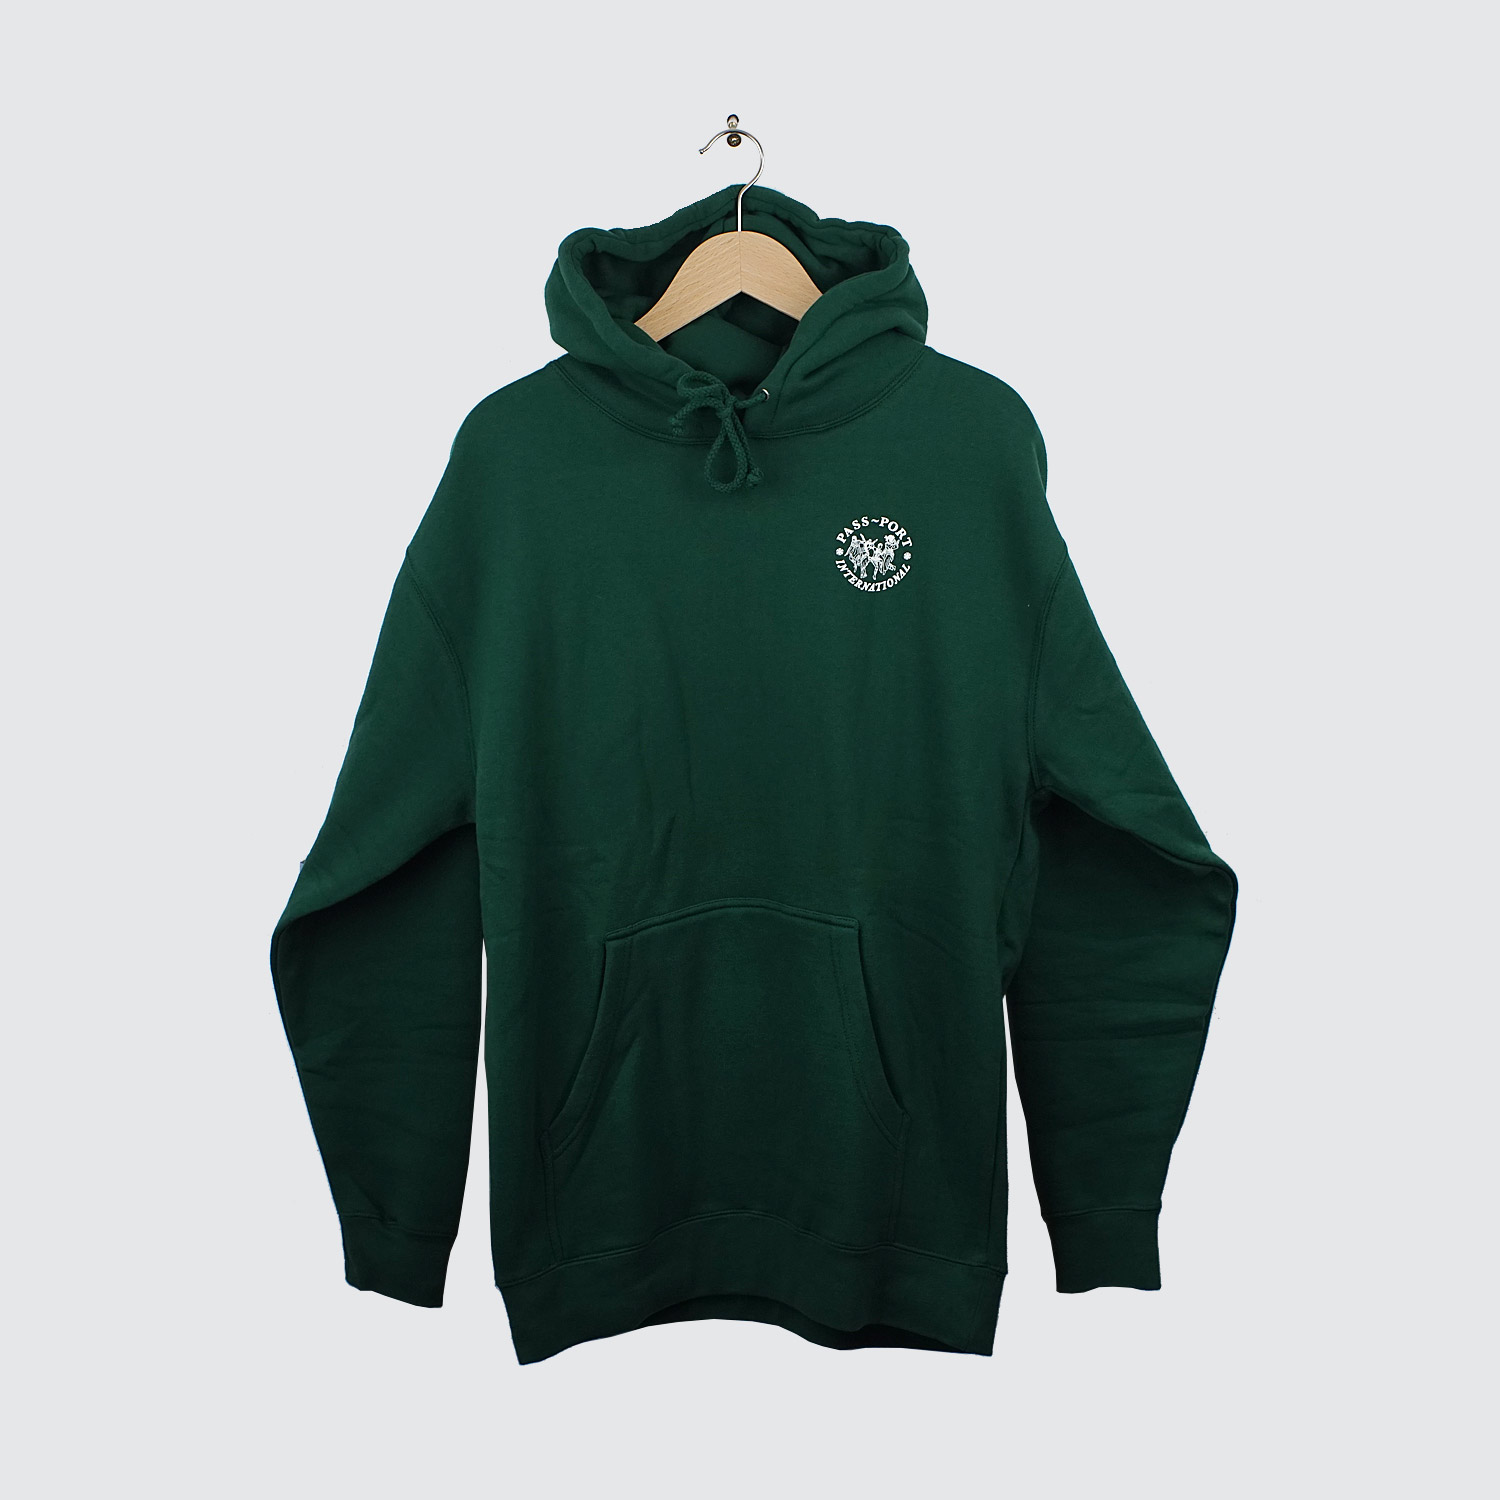 Forest green hoodie